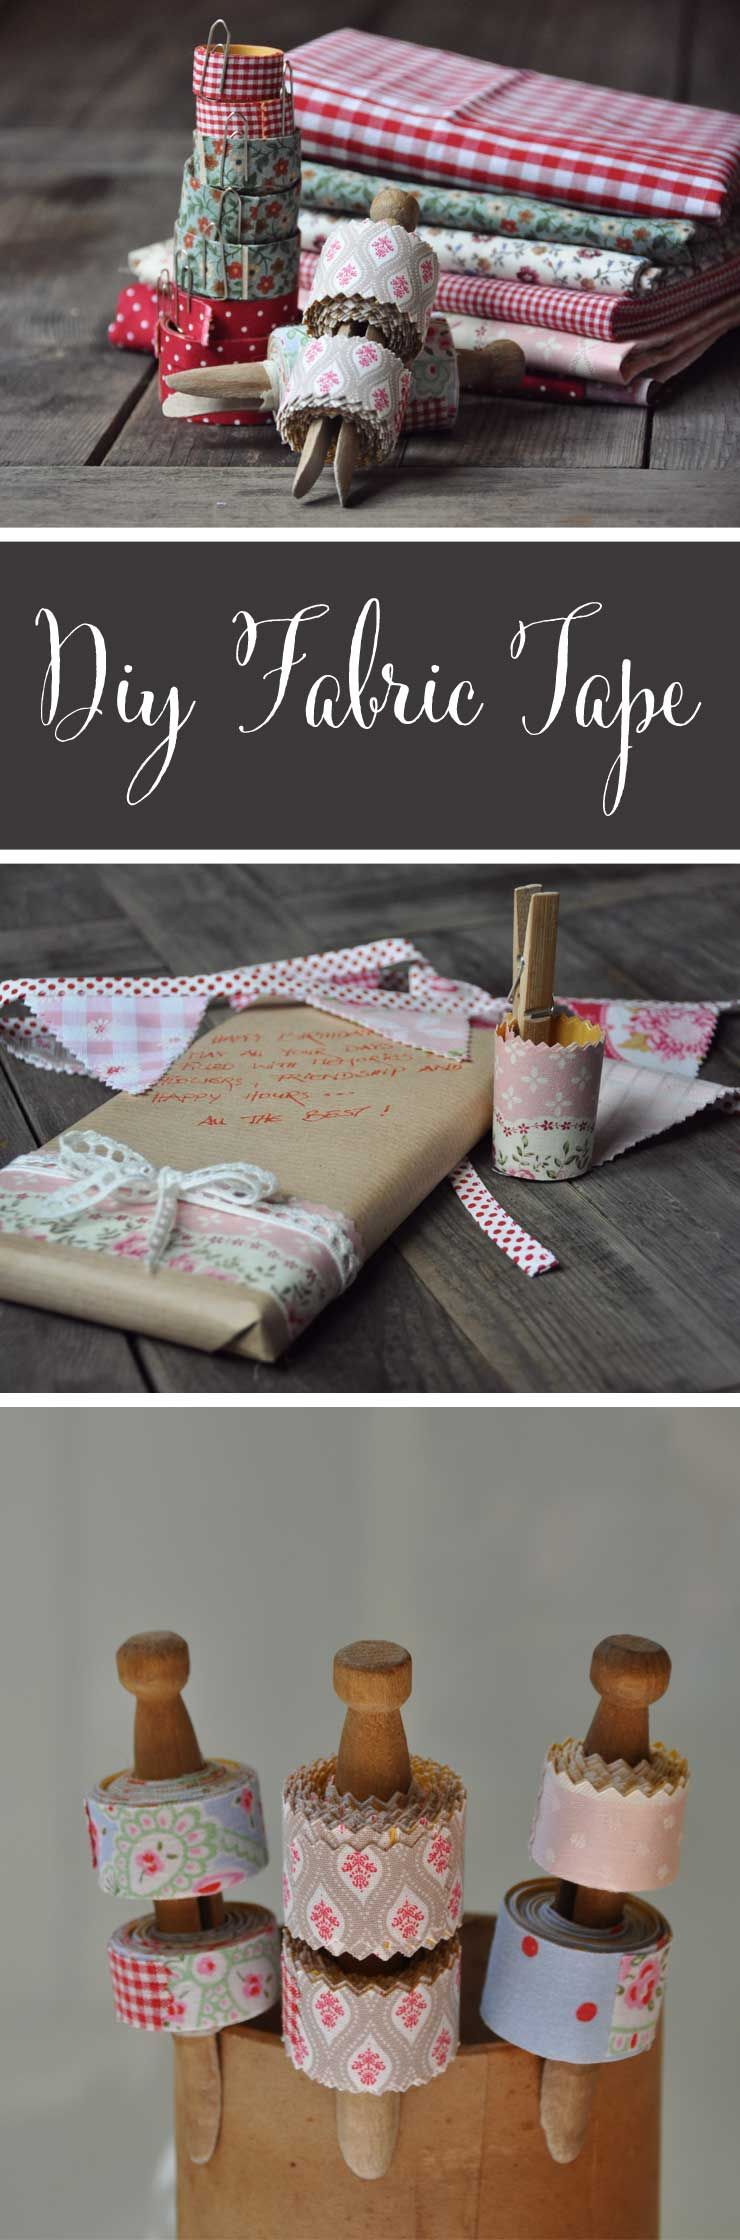 DIY Fabric Tape from {nifty thrifty things}